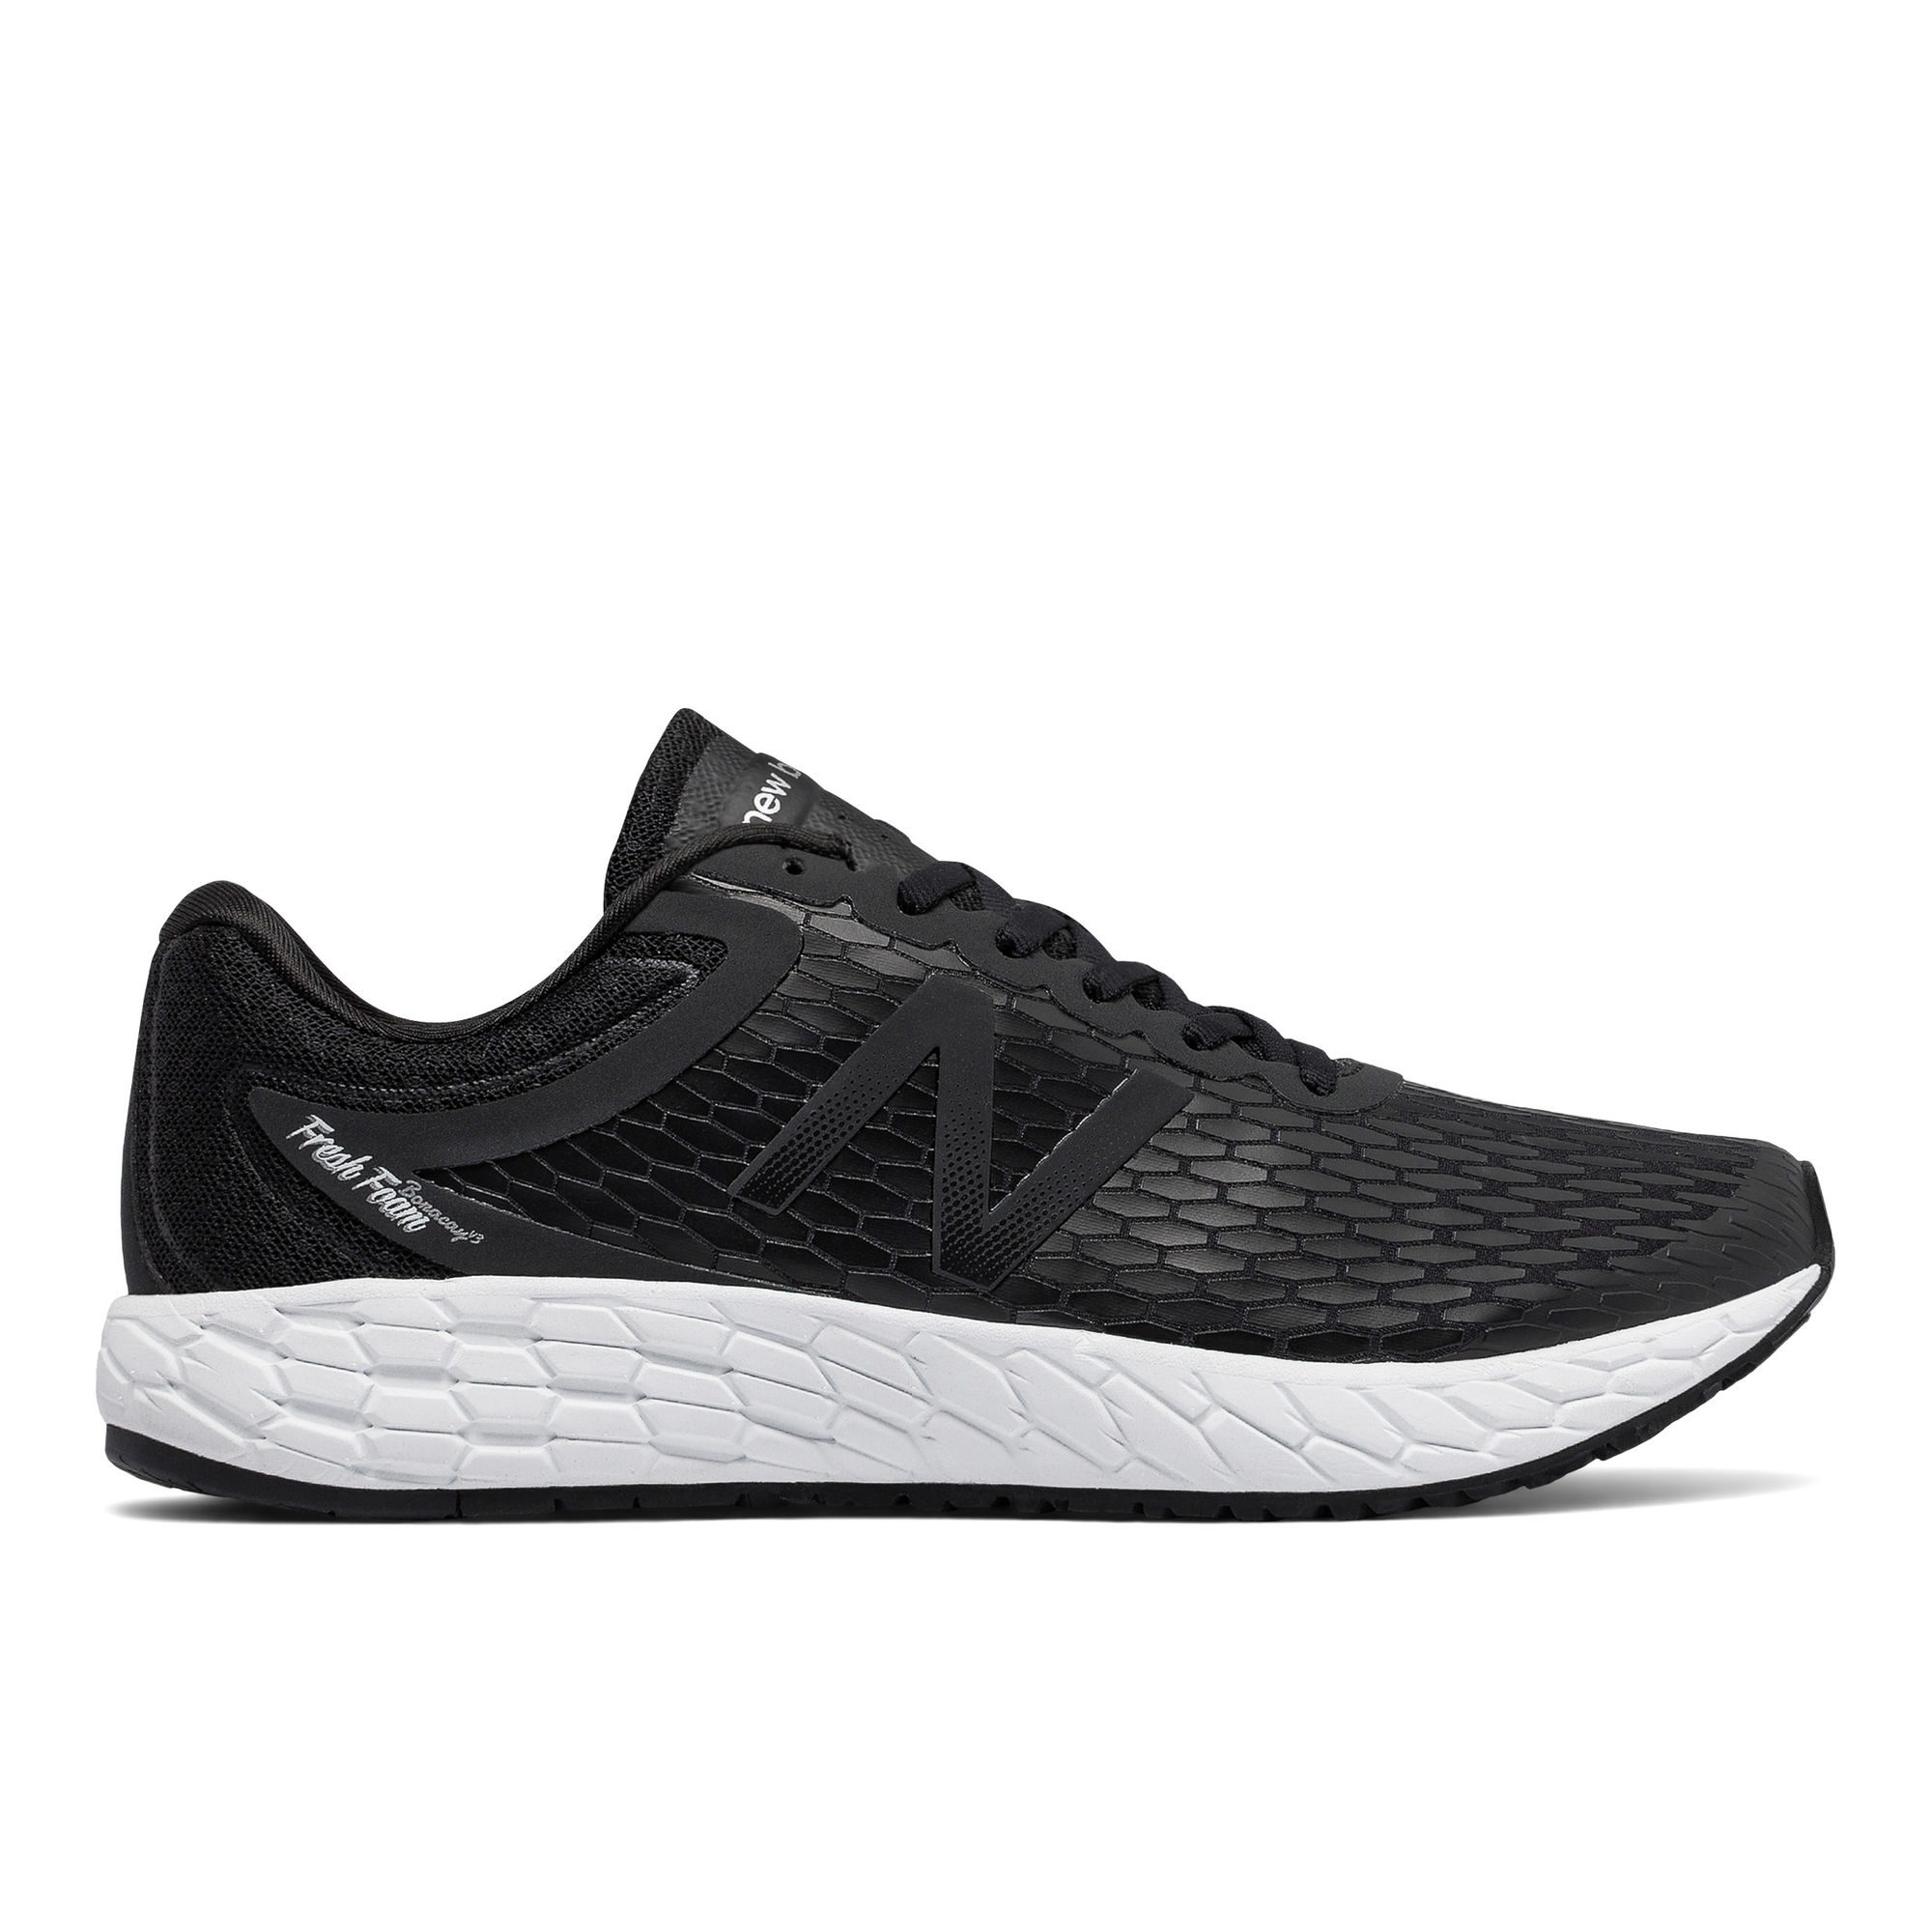 New Balance Boracay v3 in Schwarz